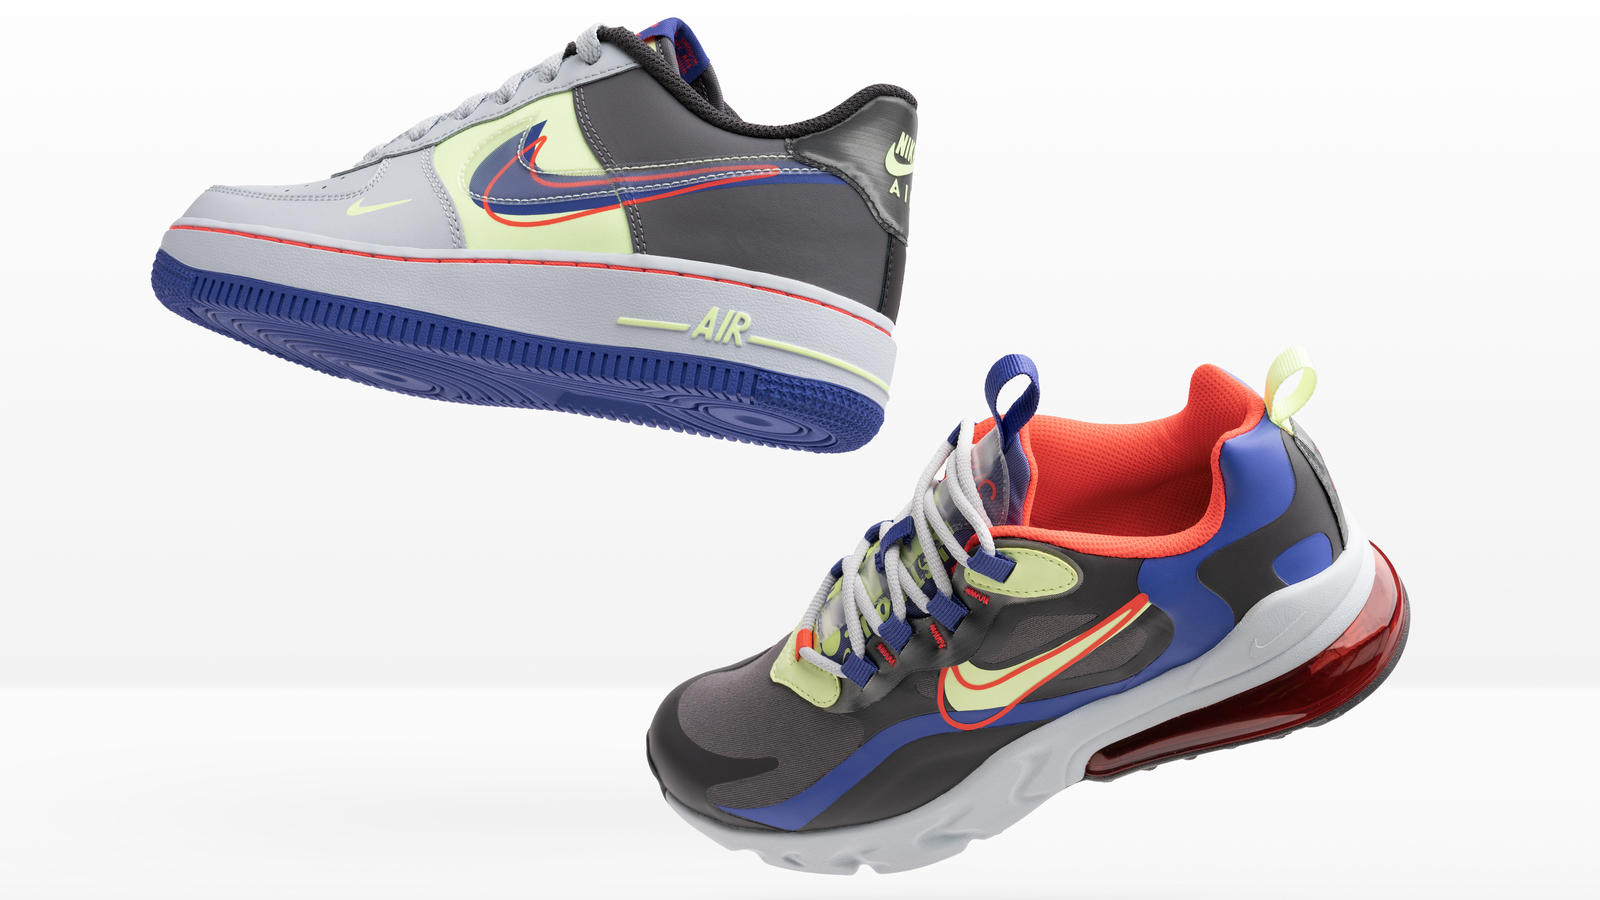 Nike And Foot Locker Inc Evolution Of Swoosh Chapter 2 Flight 89 Air Max 1 Air Max Plus Air Max 200 Air Force 1 React 270 Nike News